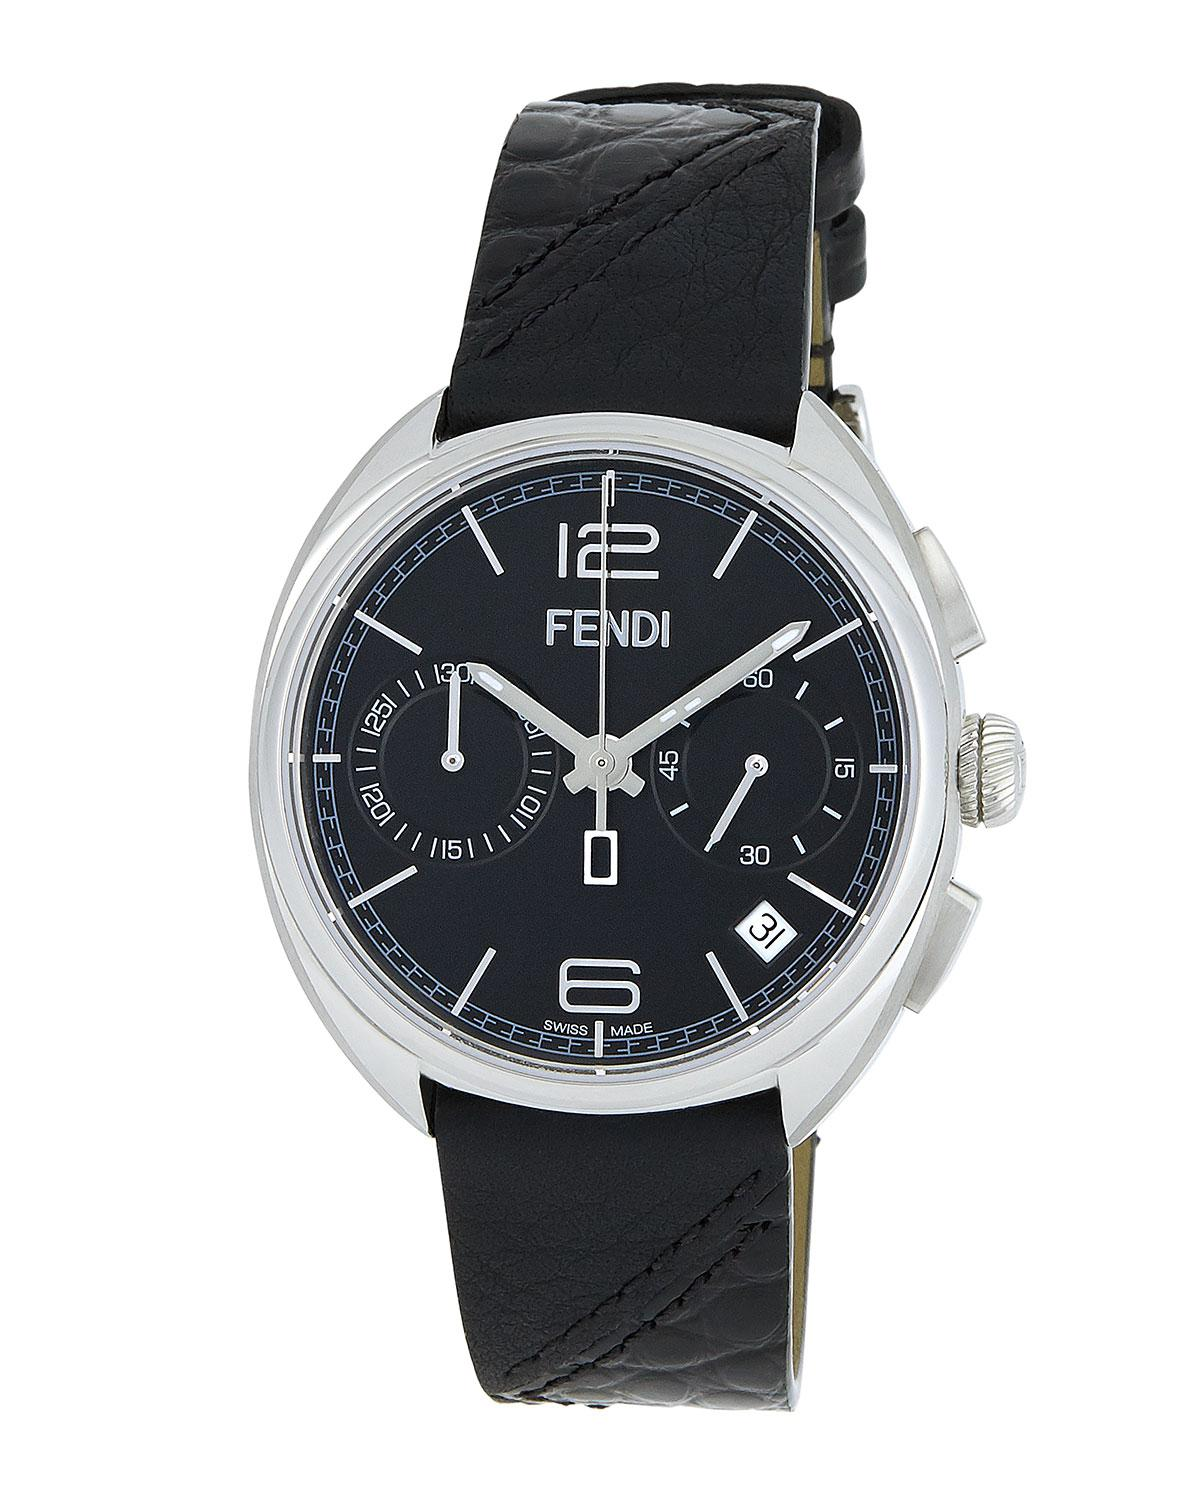 9031a6962 Fendi 40mm Momento Chronograph Watch Black in Black for Men - Lyst